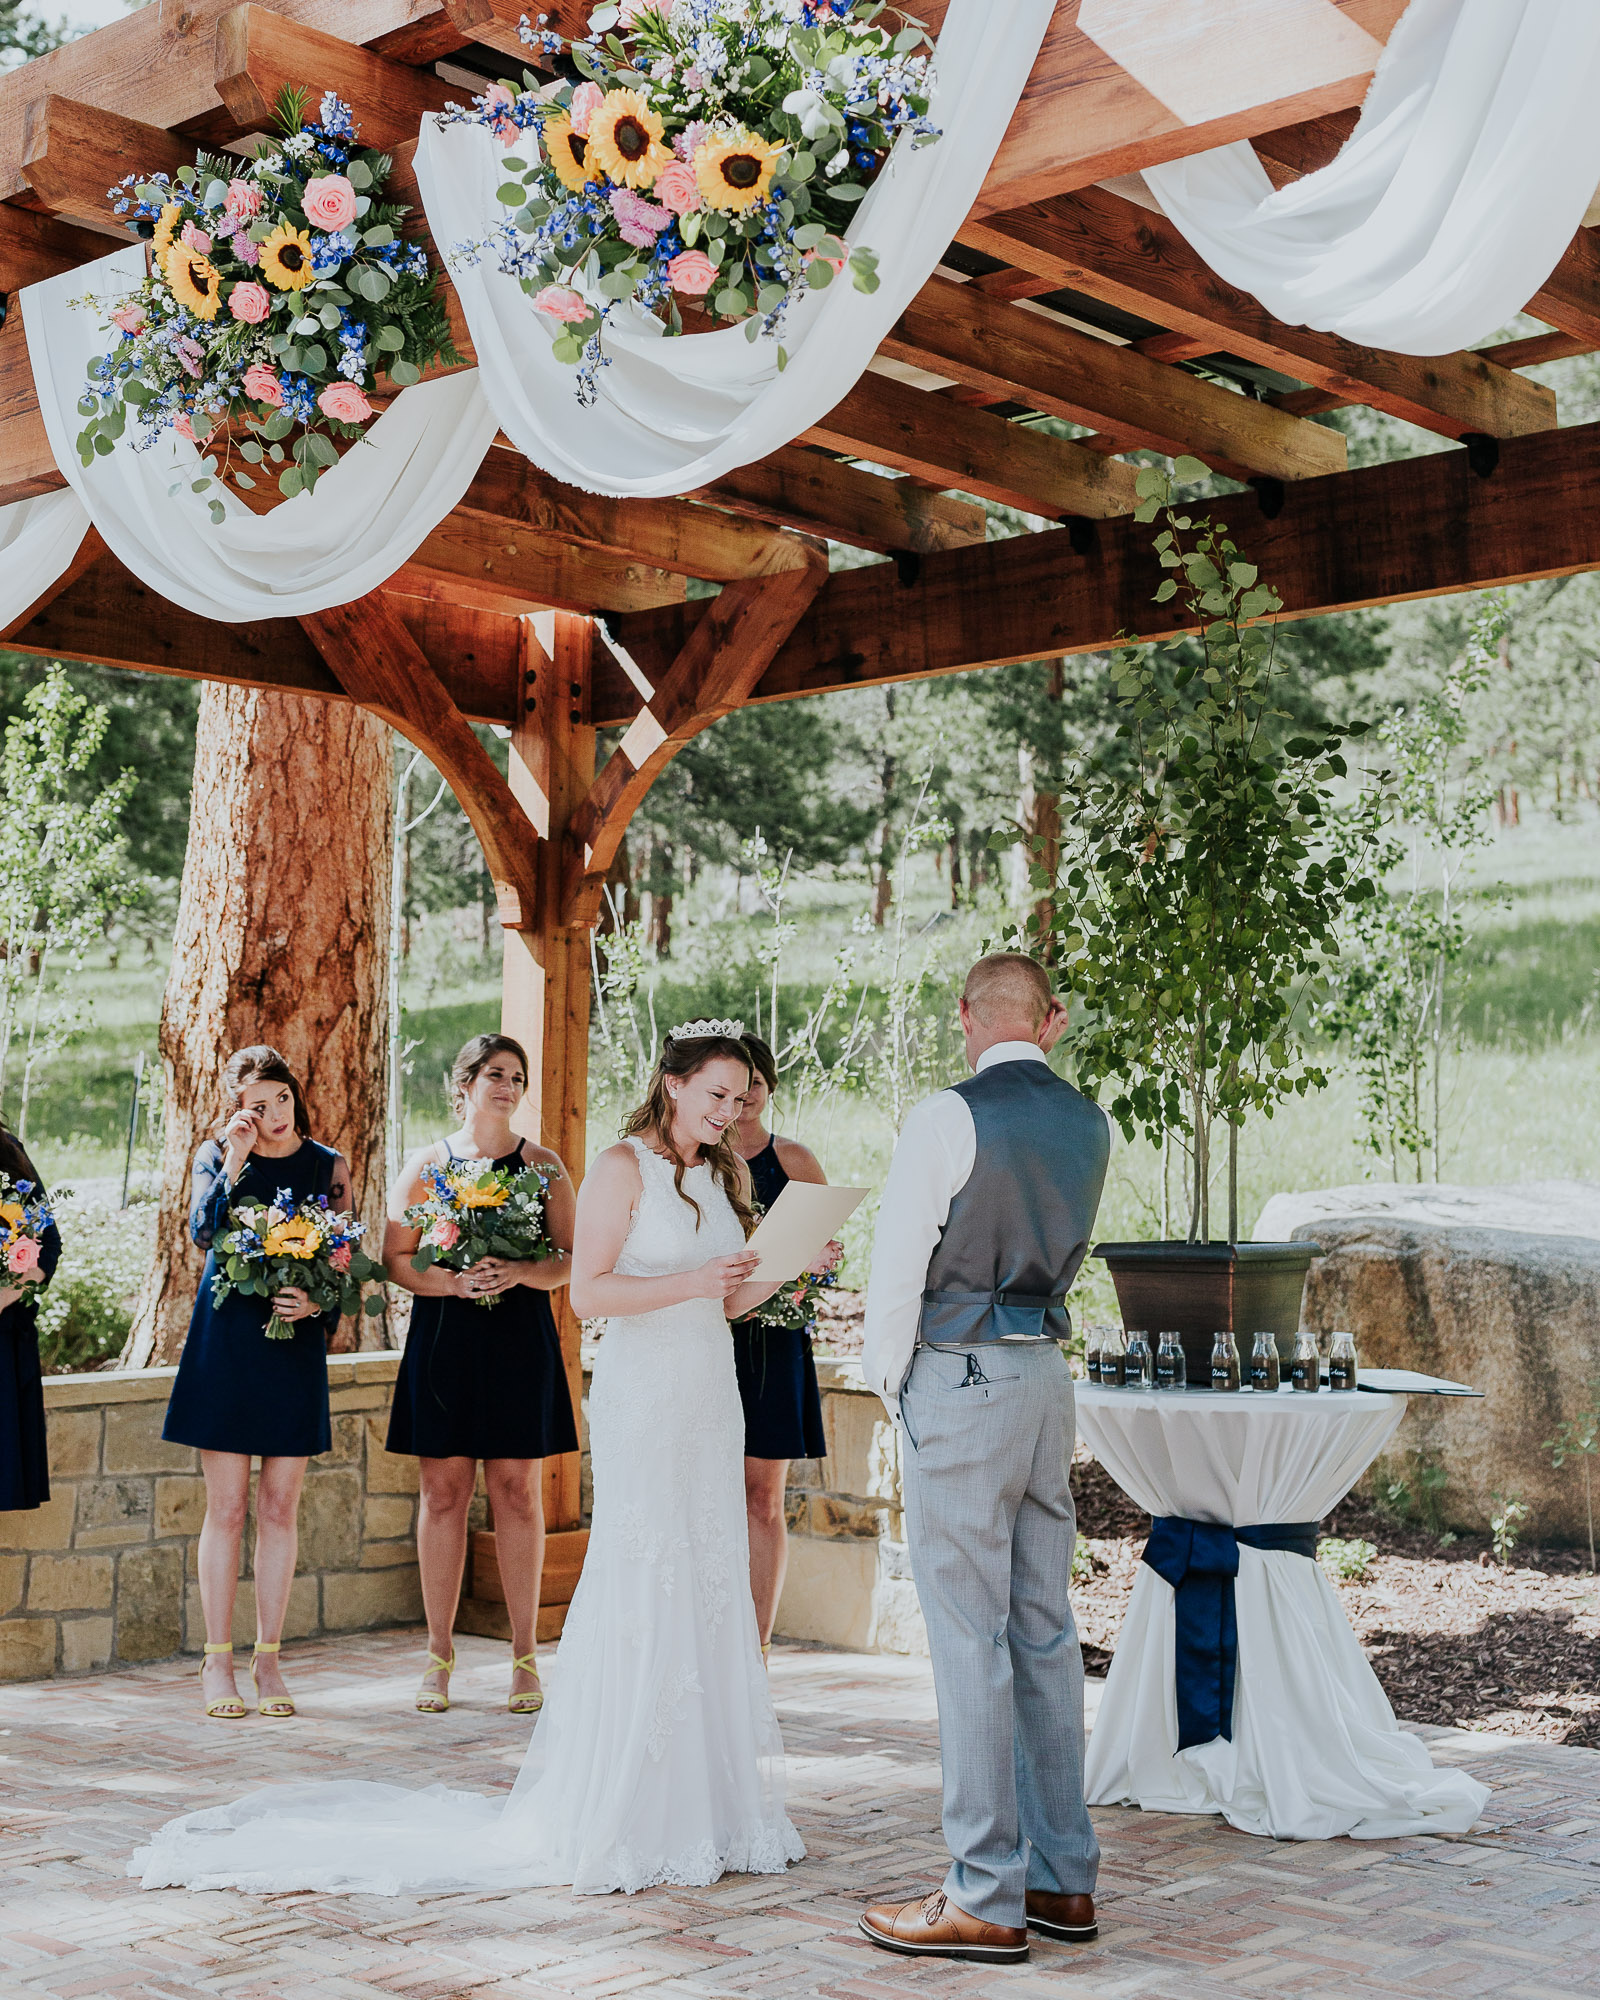 emotional vows wedding outdoor colorado wedding